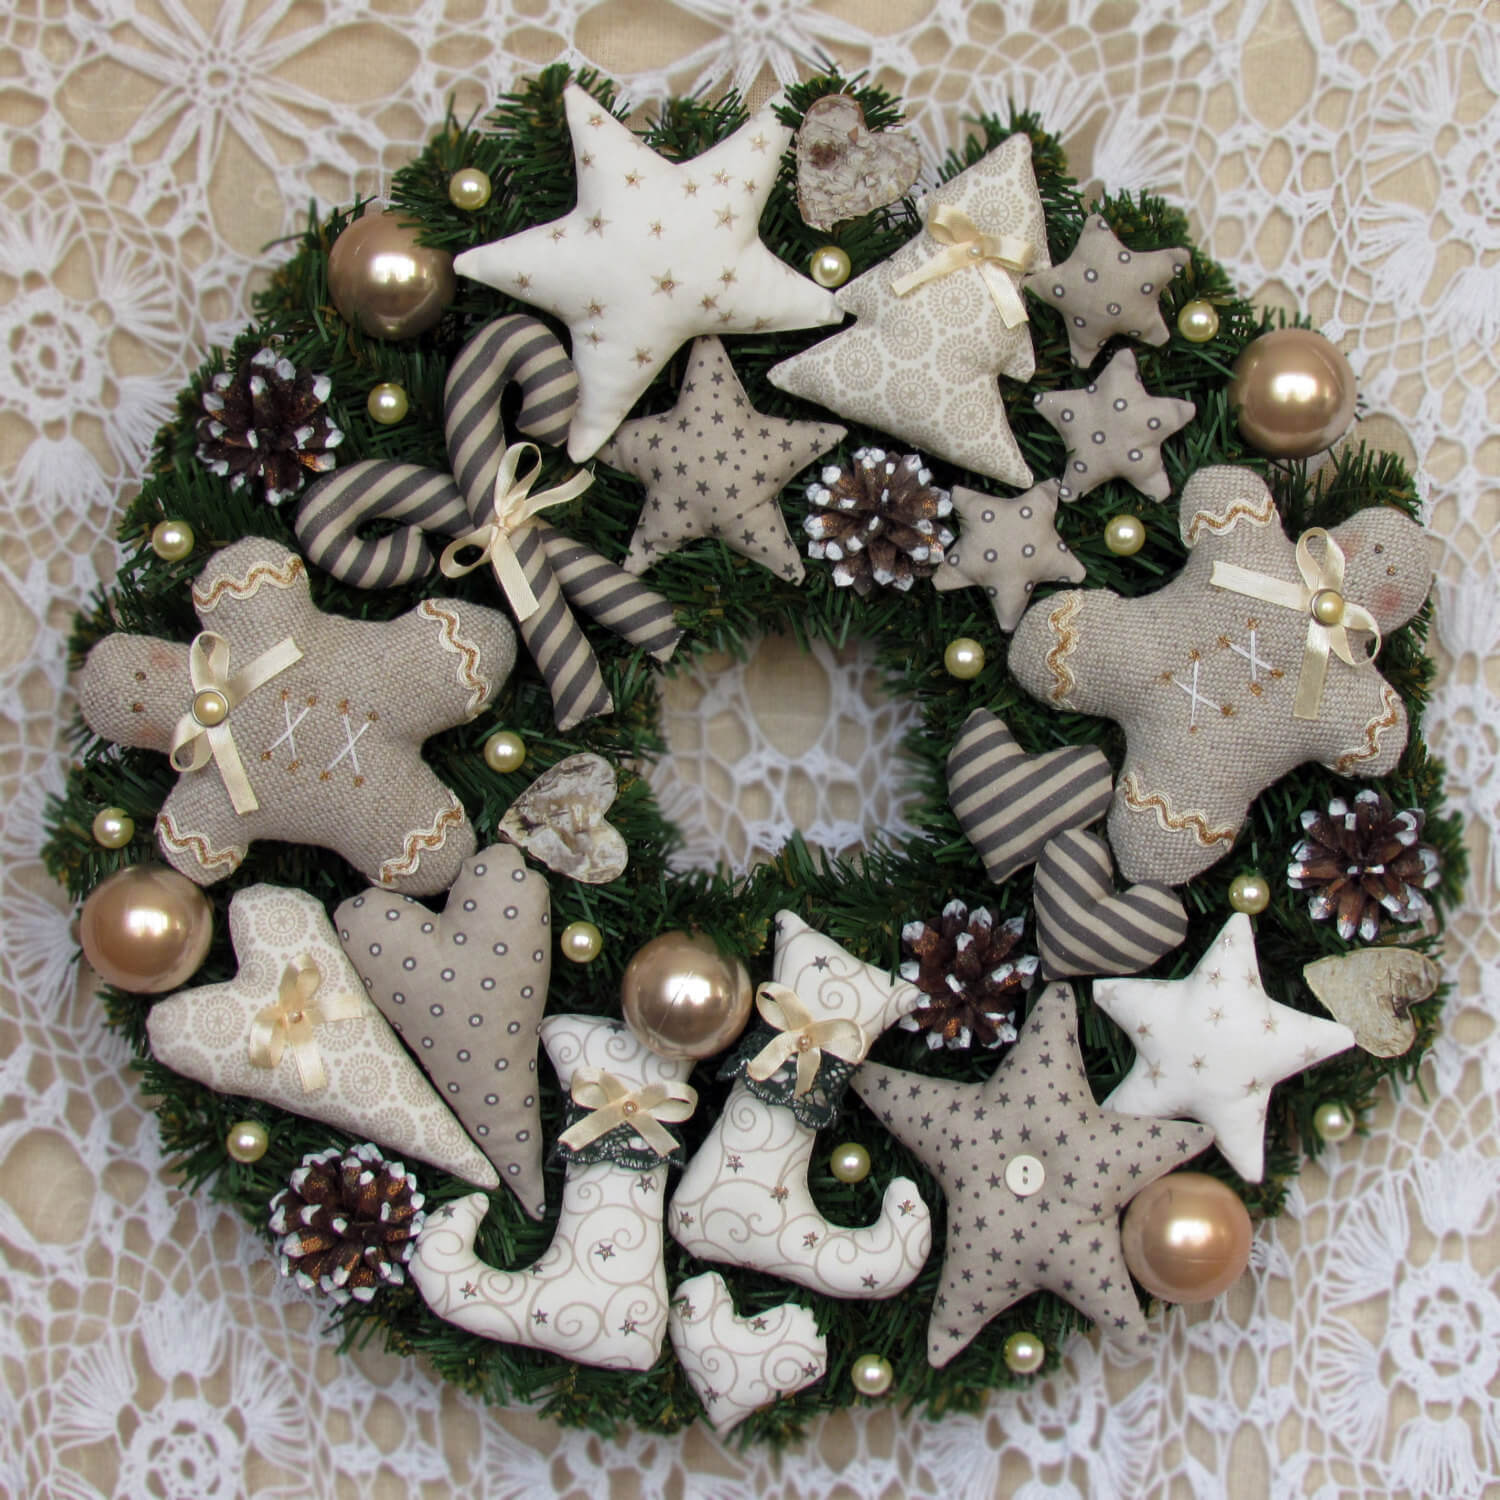 Adorable Handmade Christmas Wreath